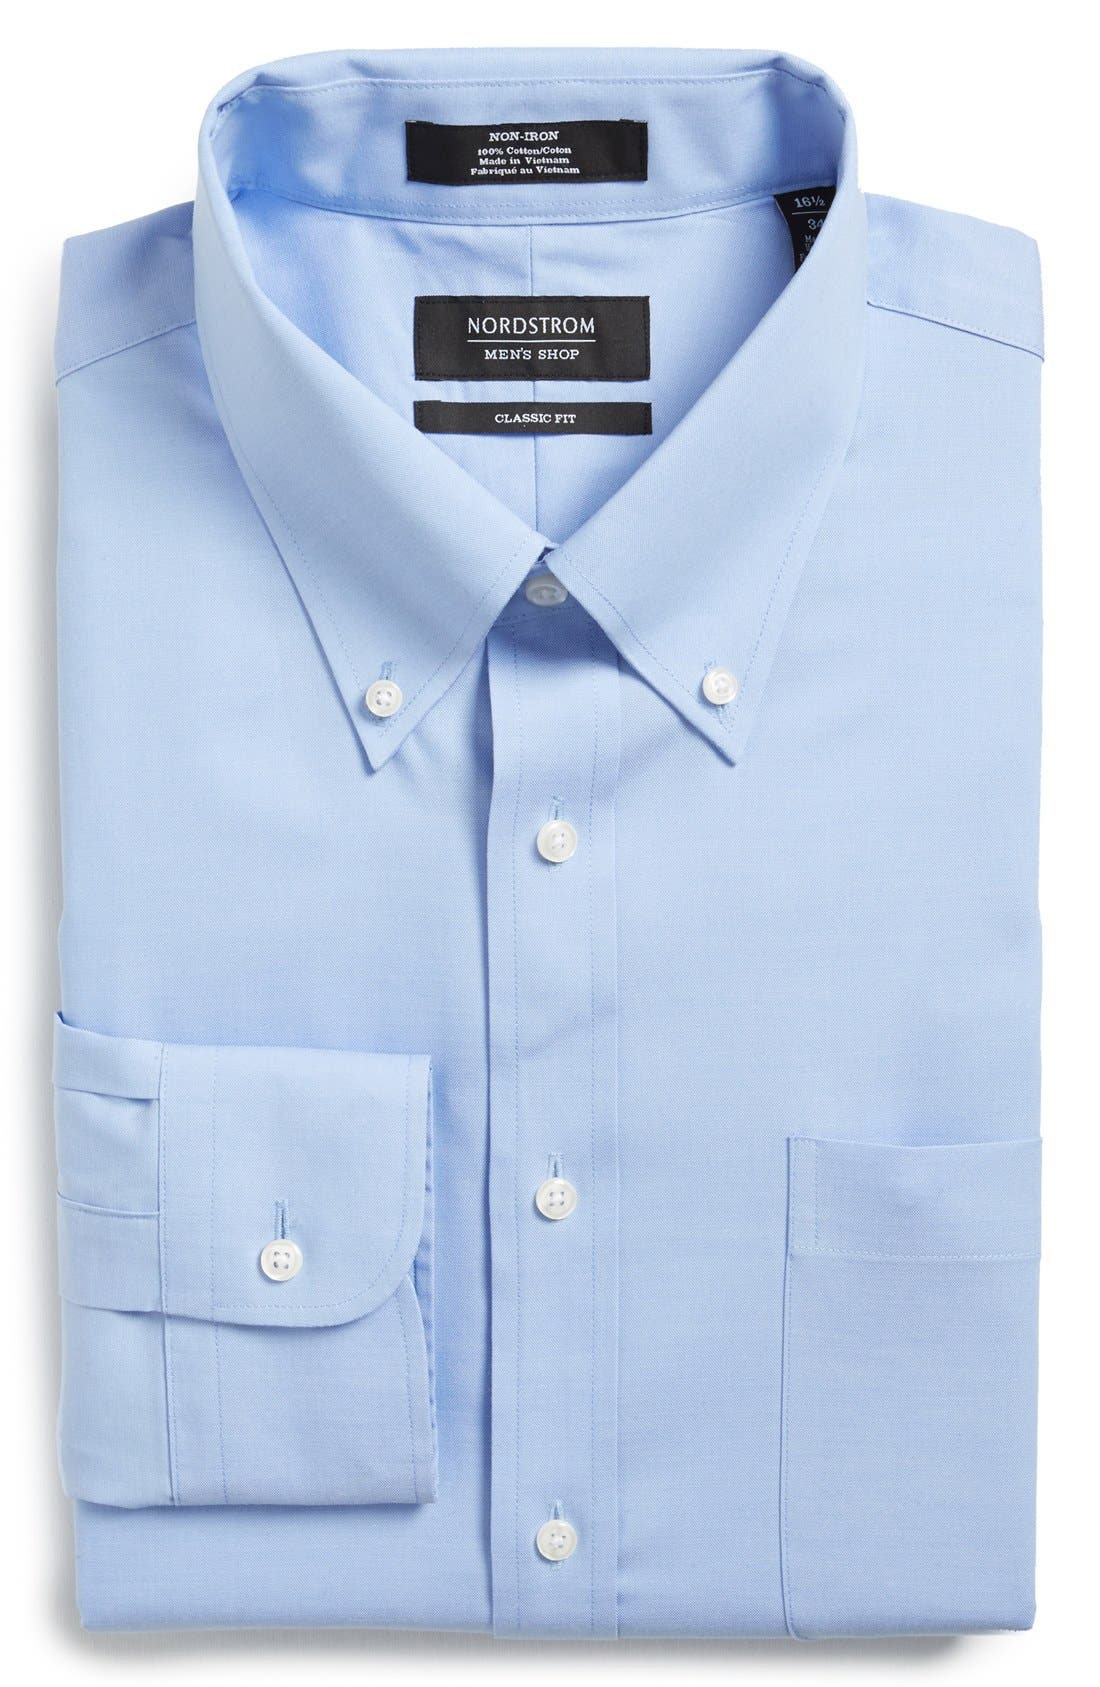 Nordstrom Men's Shop Classic Fit Non-Iron Solid Dress Shirt